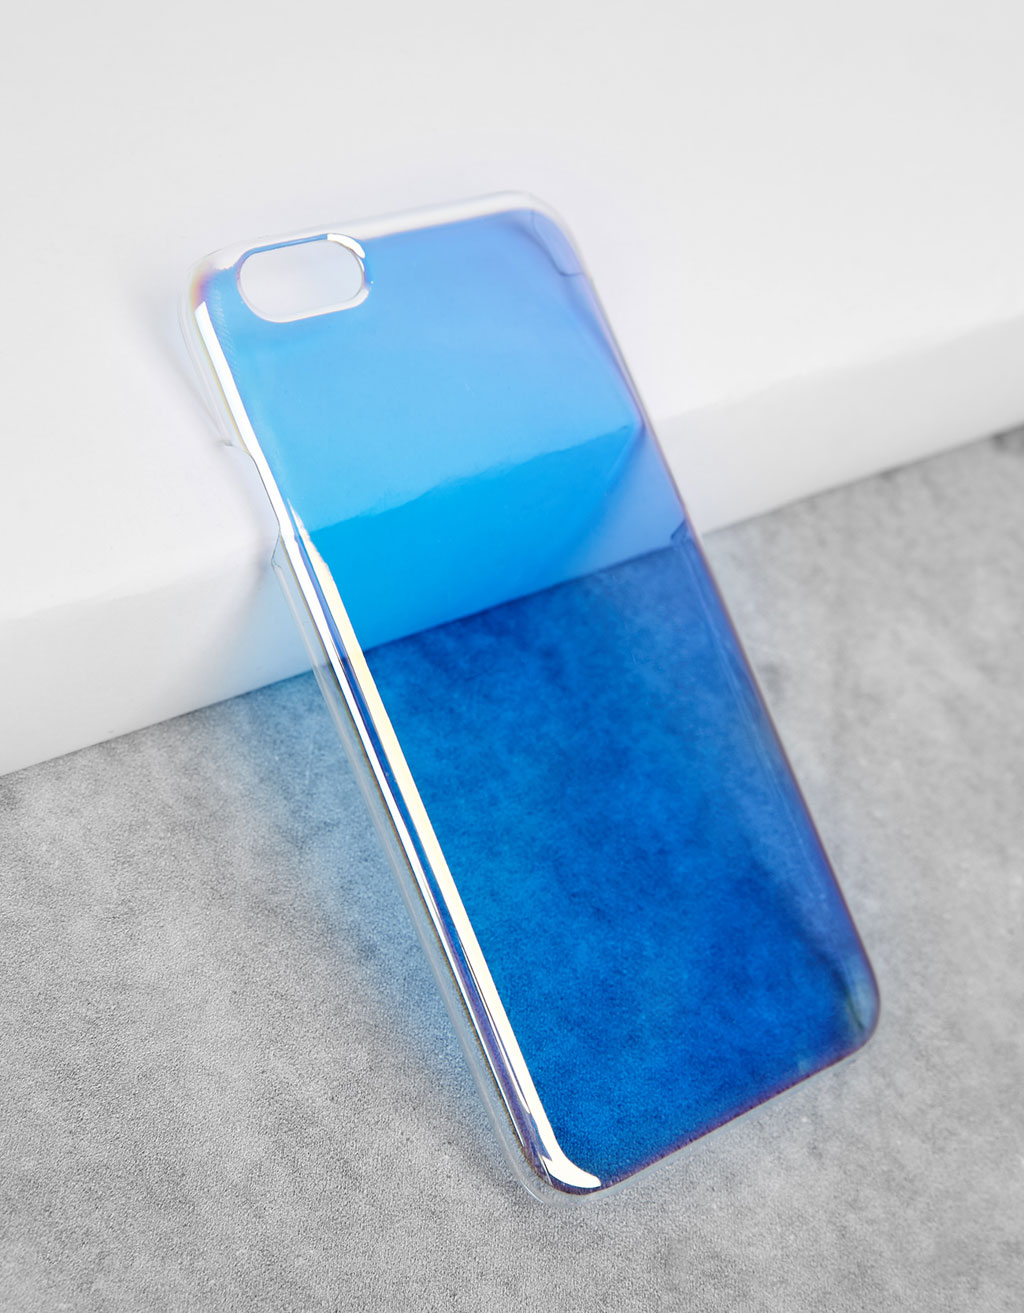 Iridescent iPhone 6 Plus cover